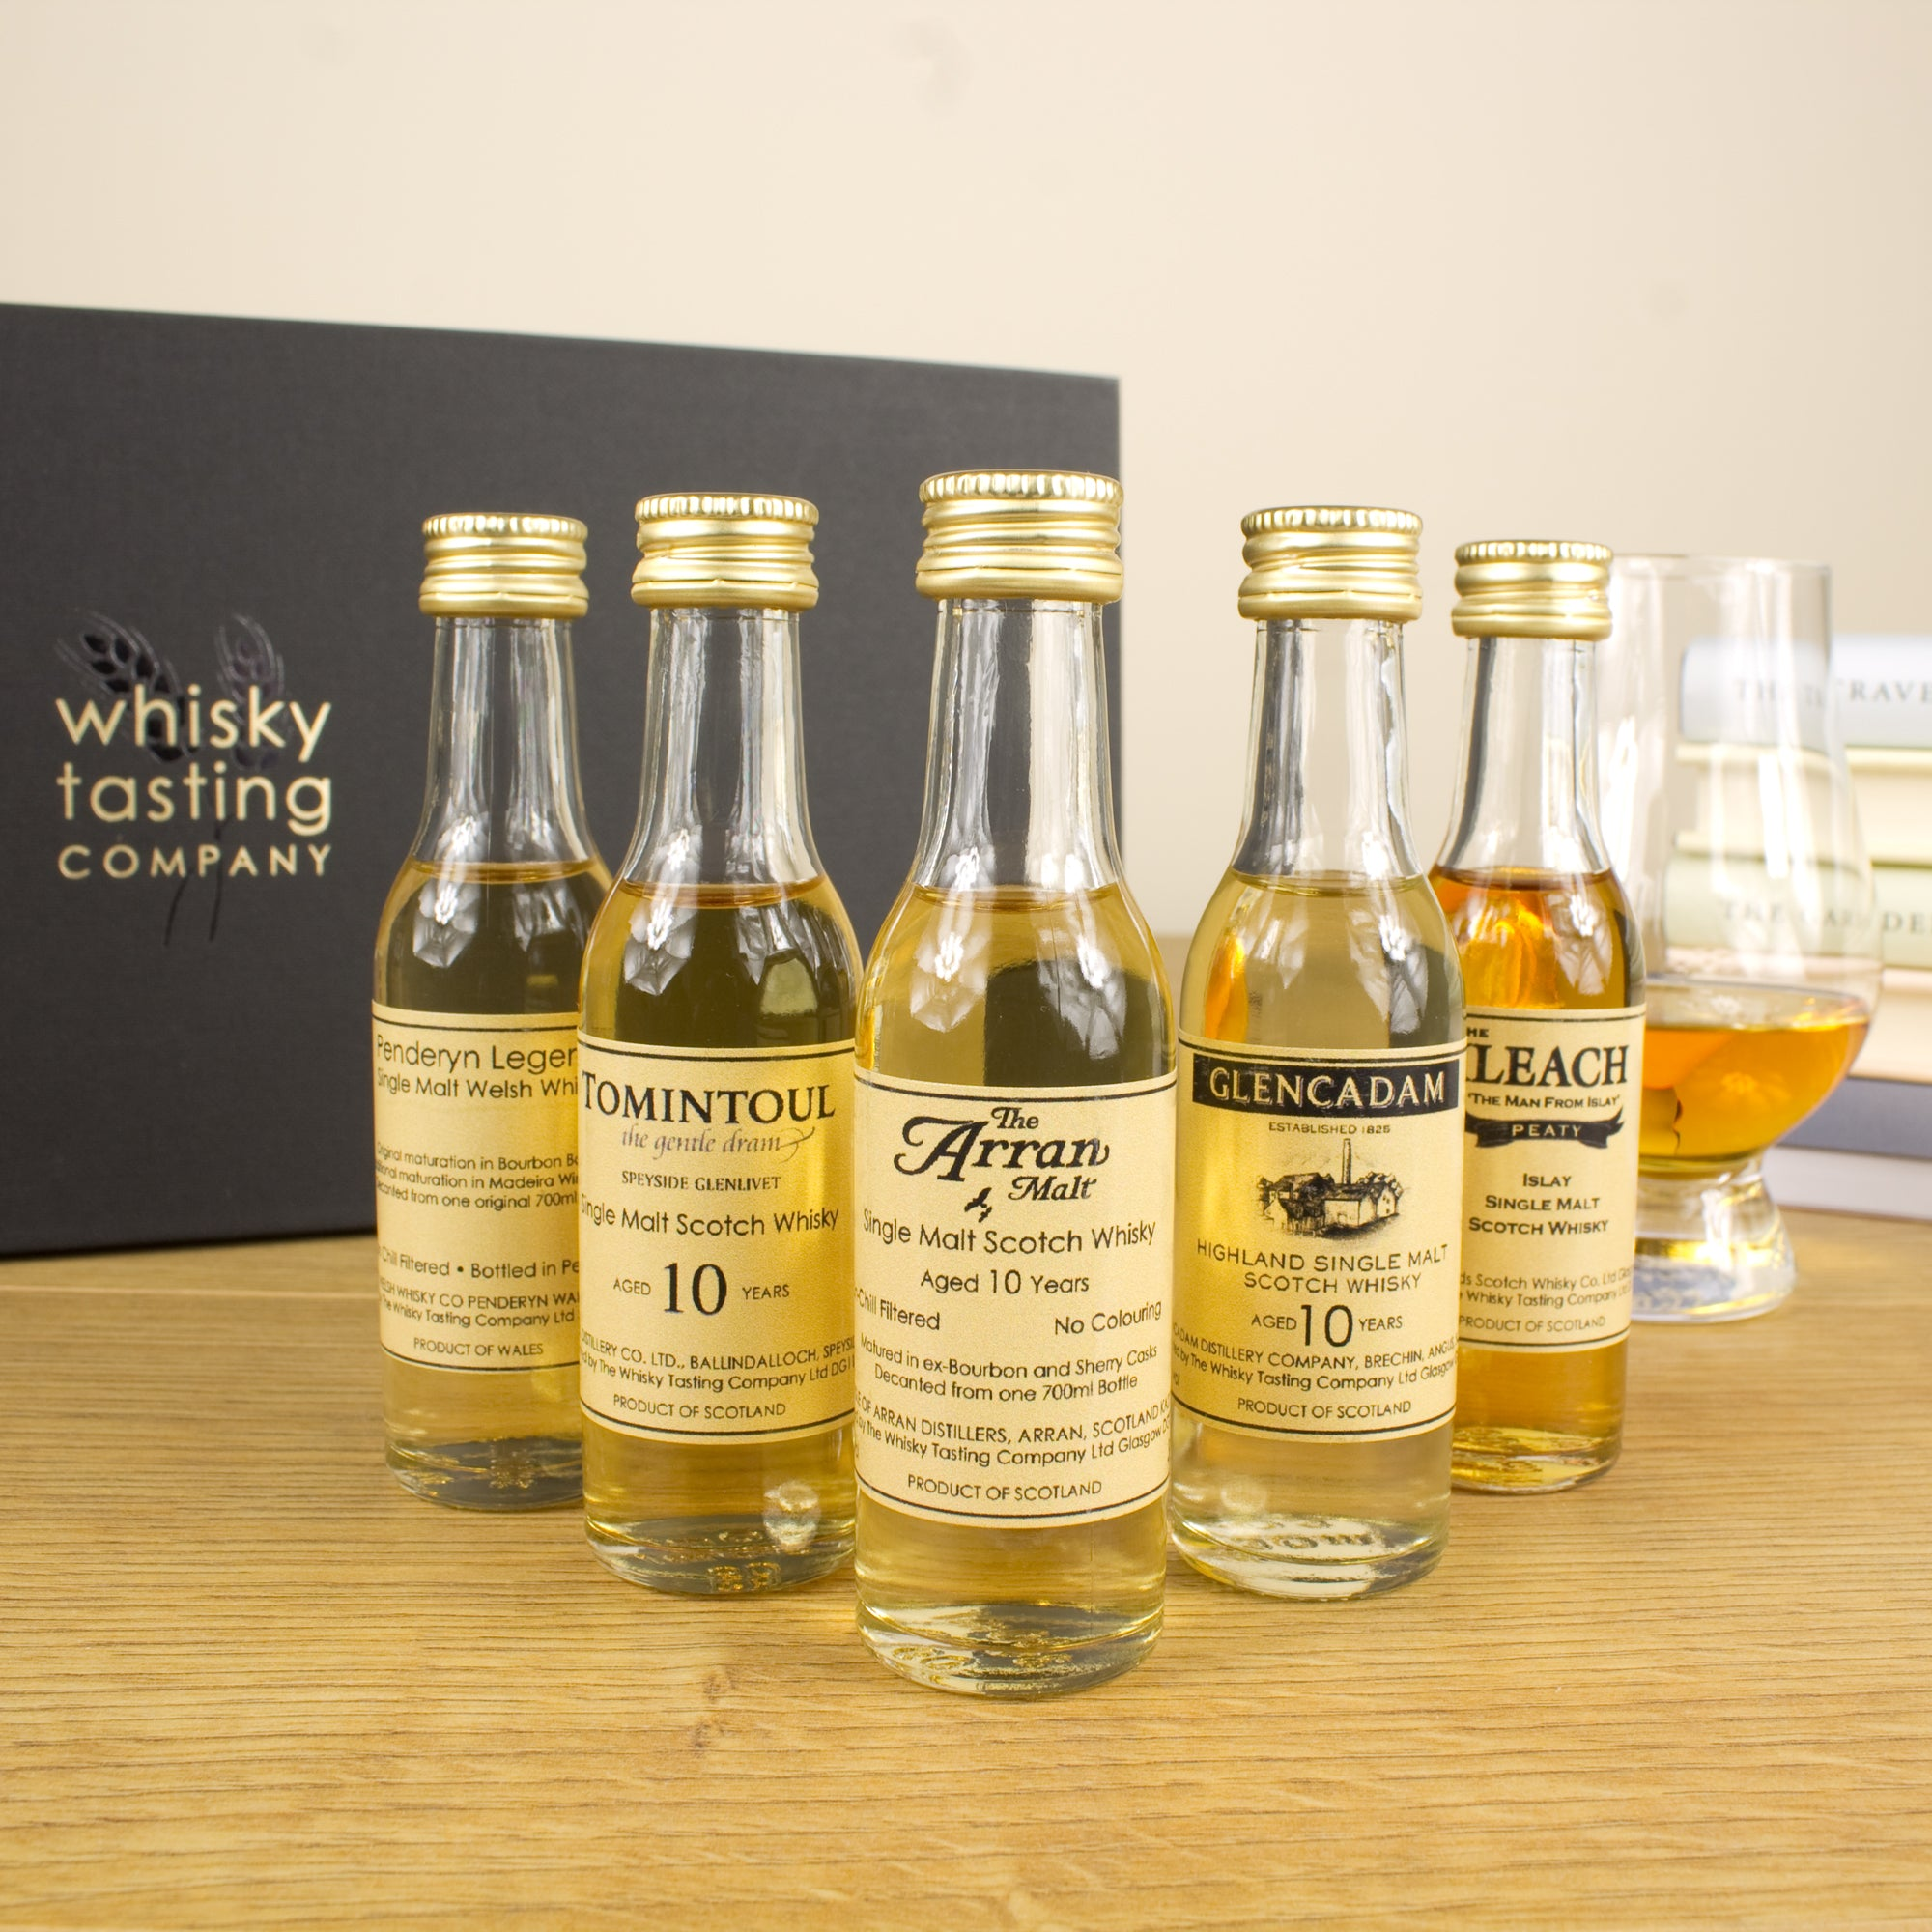 Whisky subscription single malt bottles and gift box, various subscription plans available